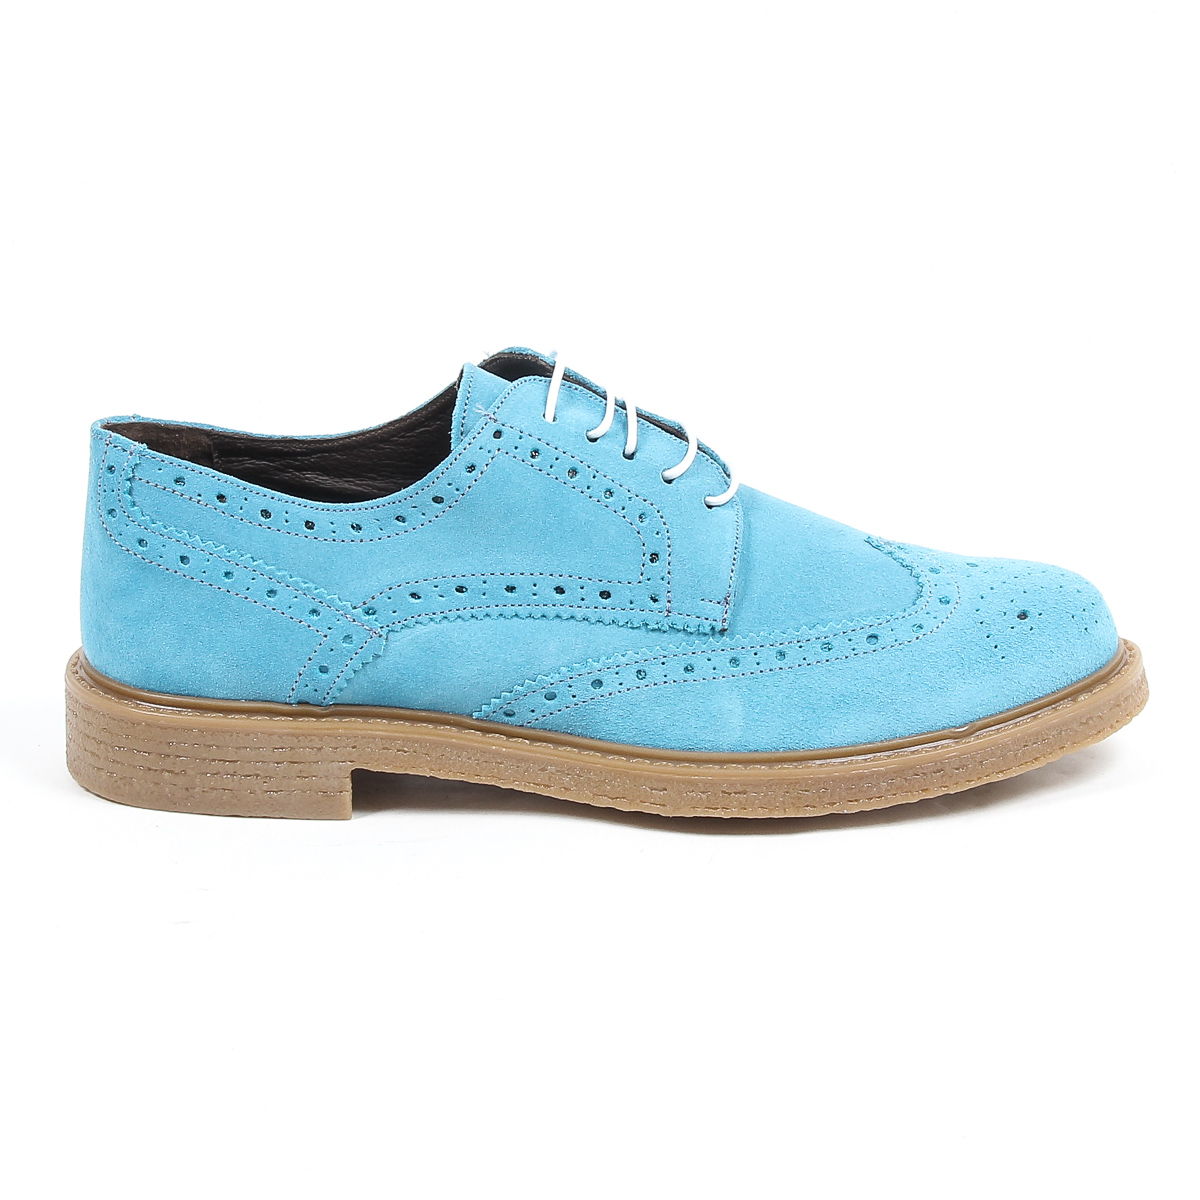 Primary image for V 1969 Italia Mens Brogue Oxford Shoe